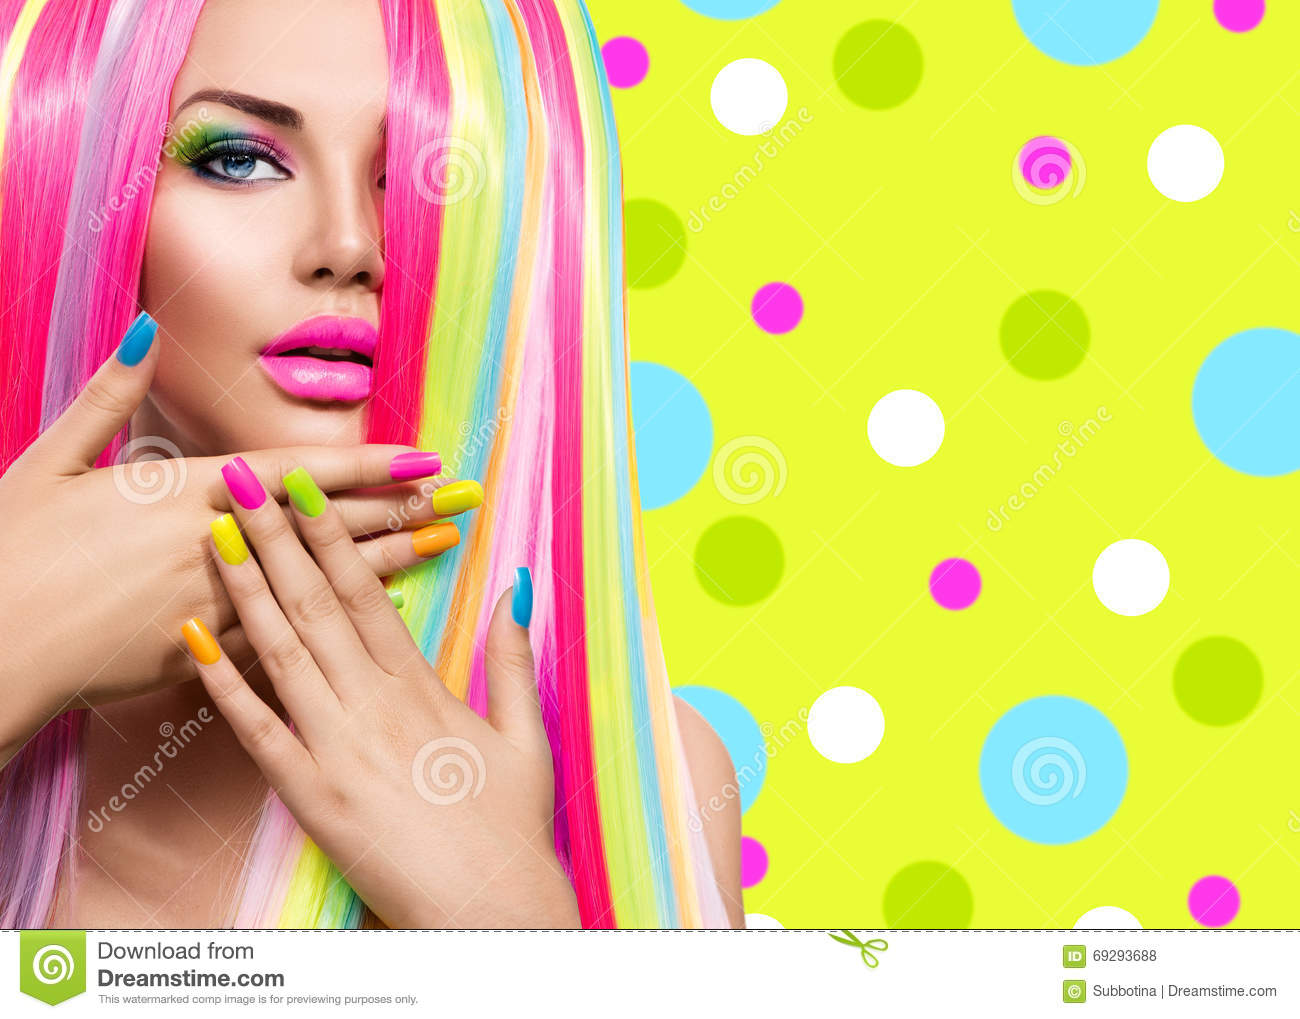 Beauty Girl Portrait With Colorful Nails Hair And Makeup